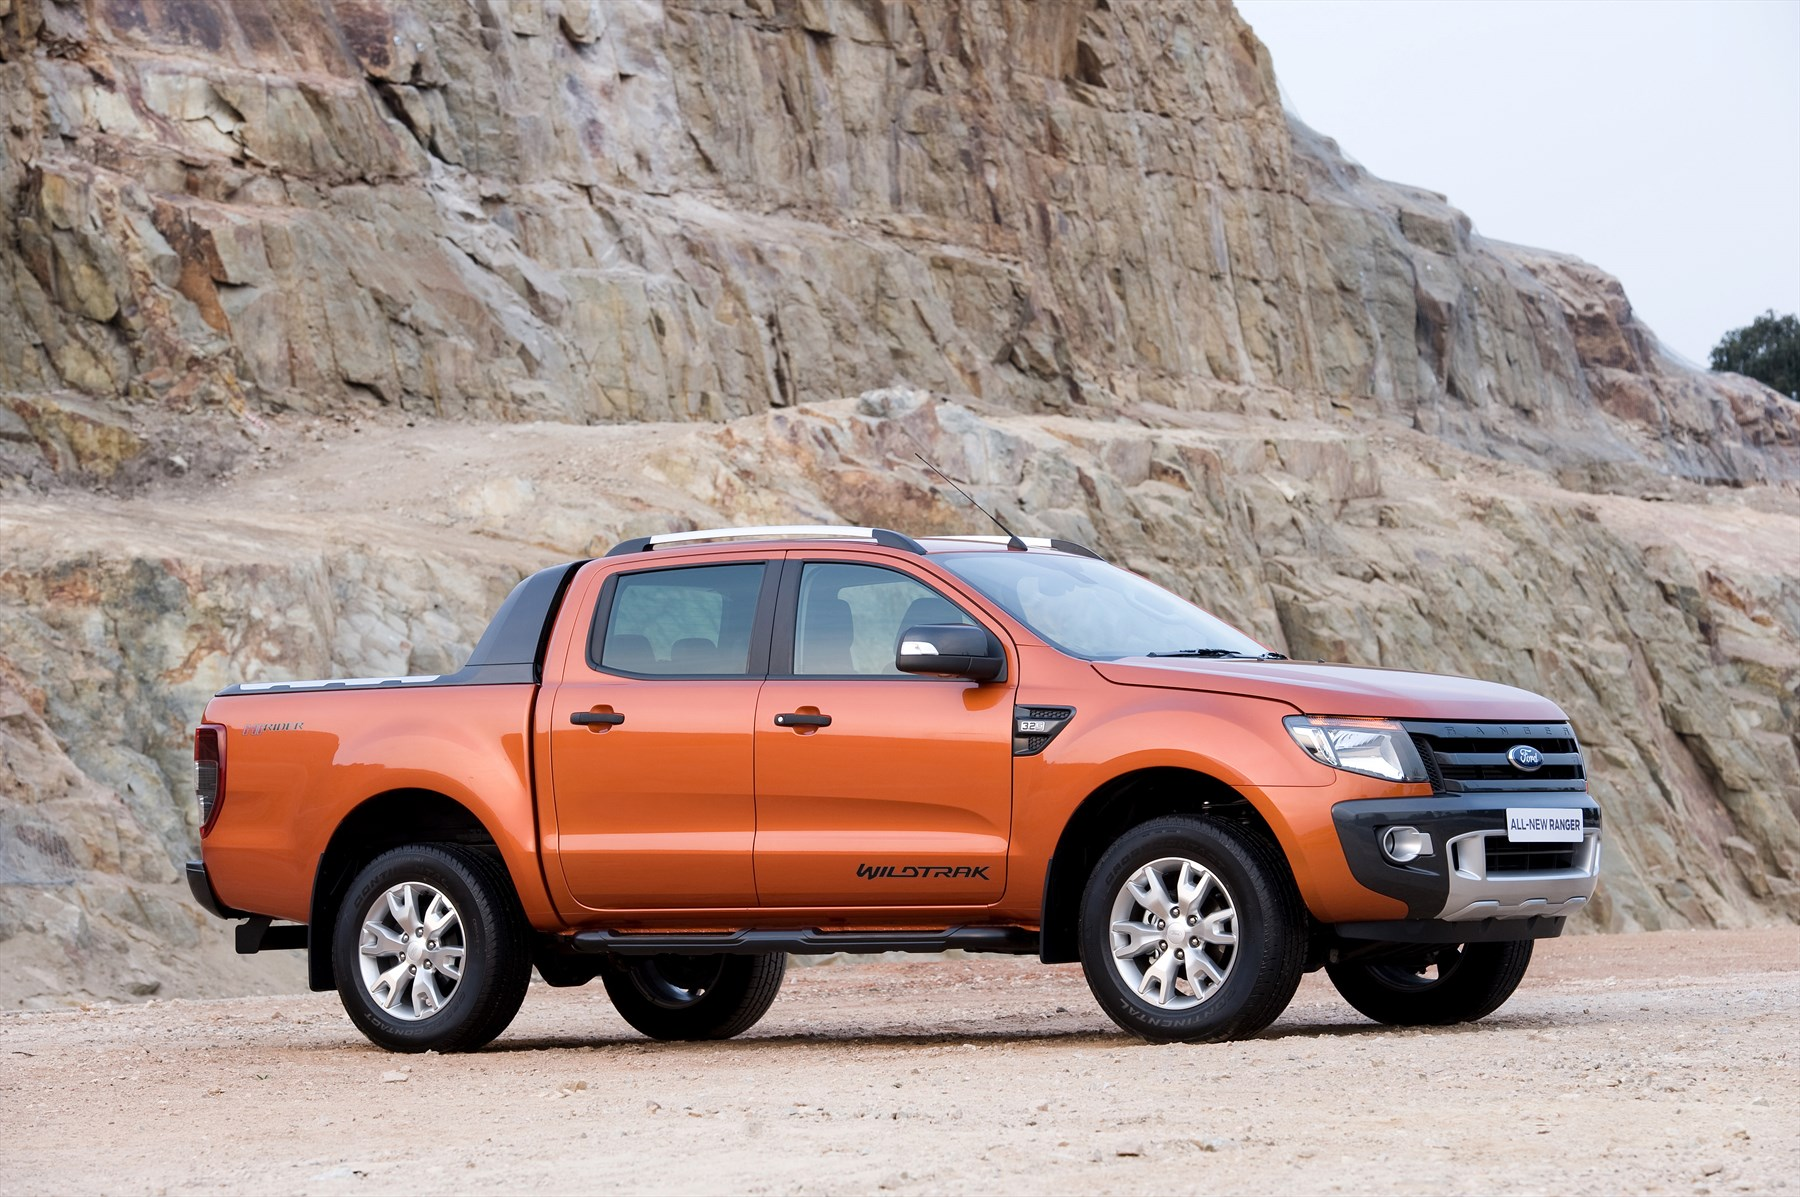 wildtrak_1800x1800-385502